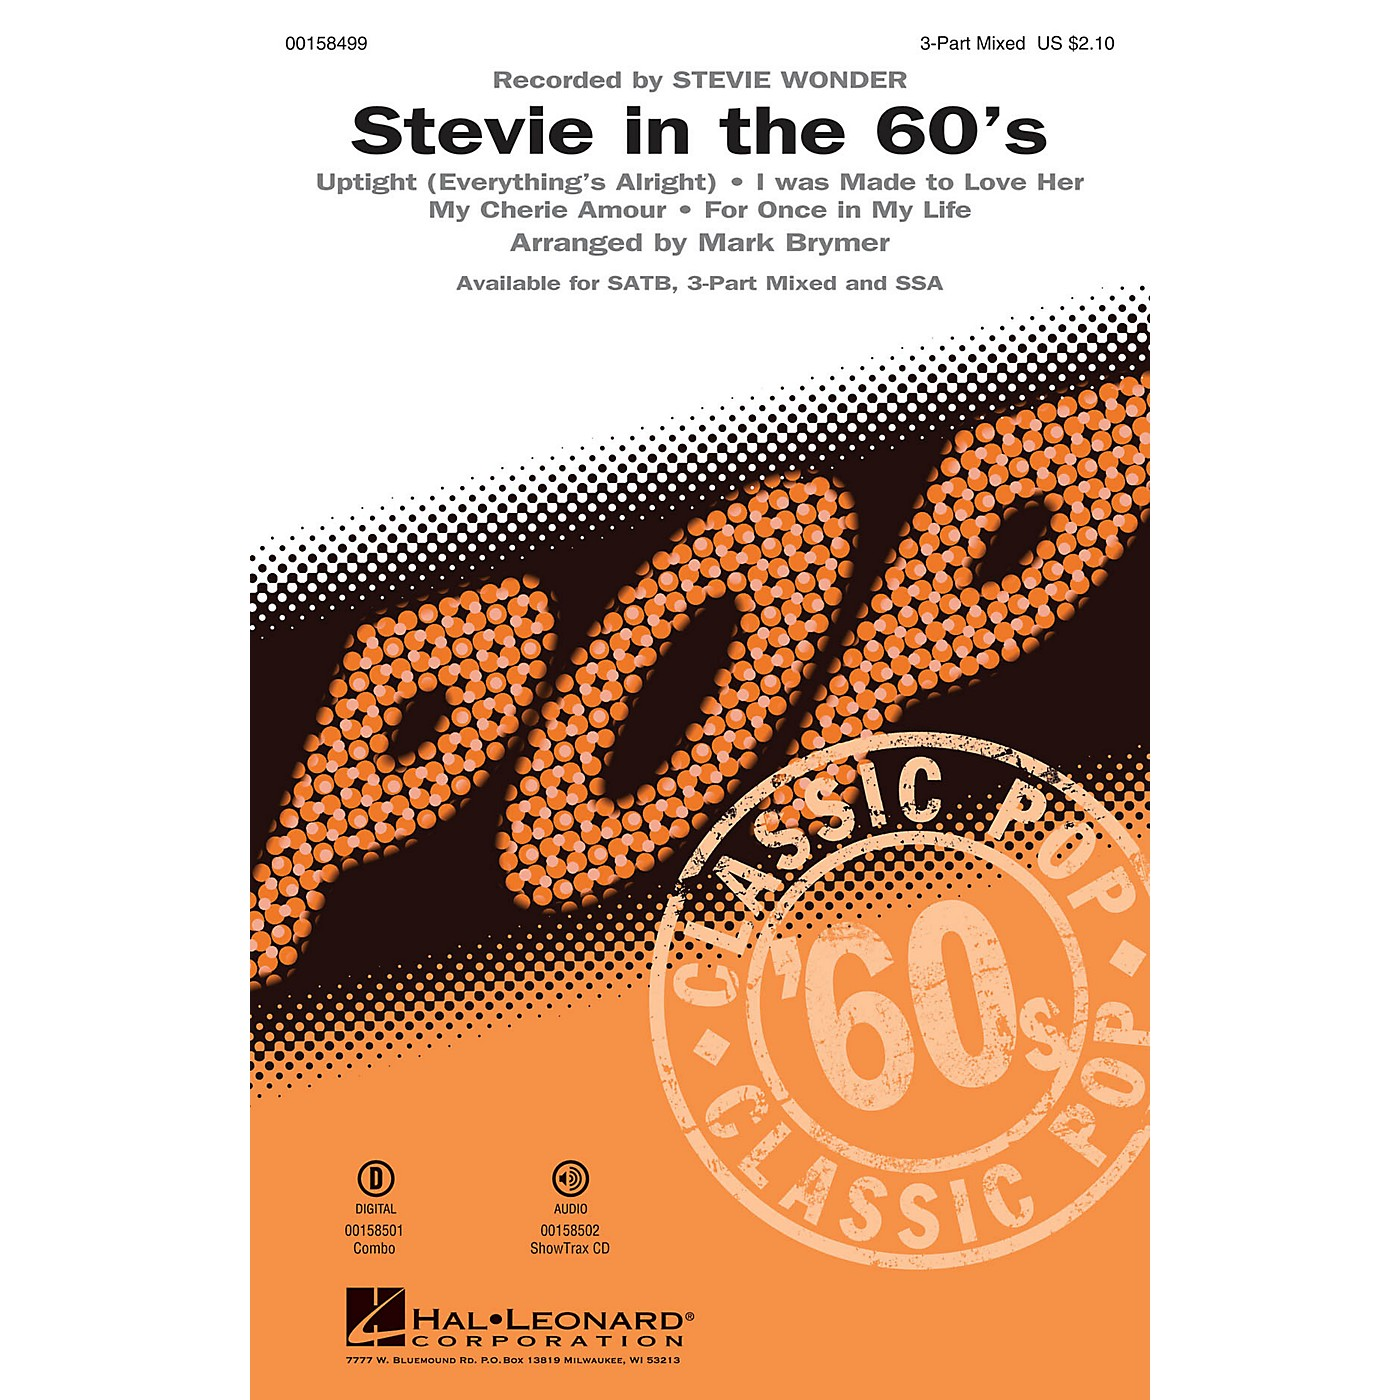 Hal Leonard Stevie in the 60s (Medley) 3-Part Mixed arranged by Mark Brymer thumbnail